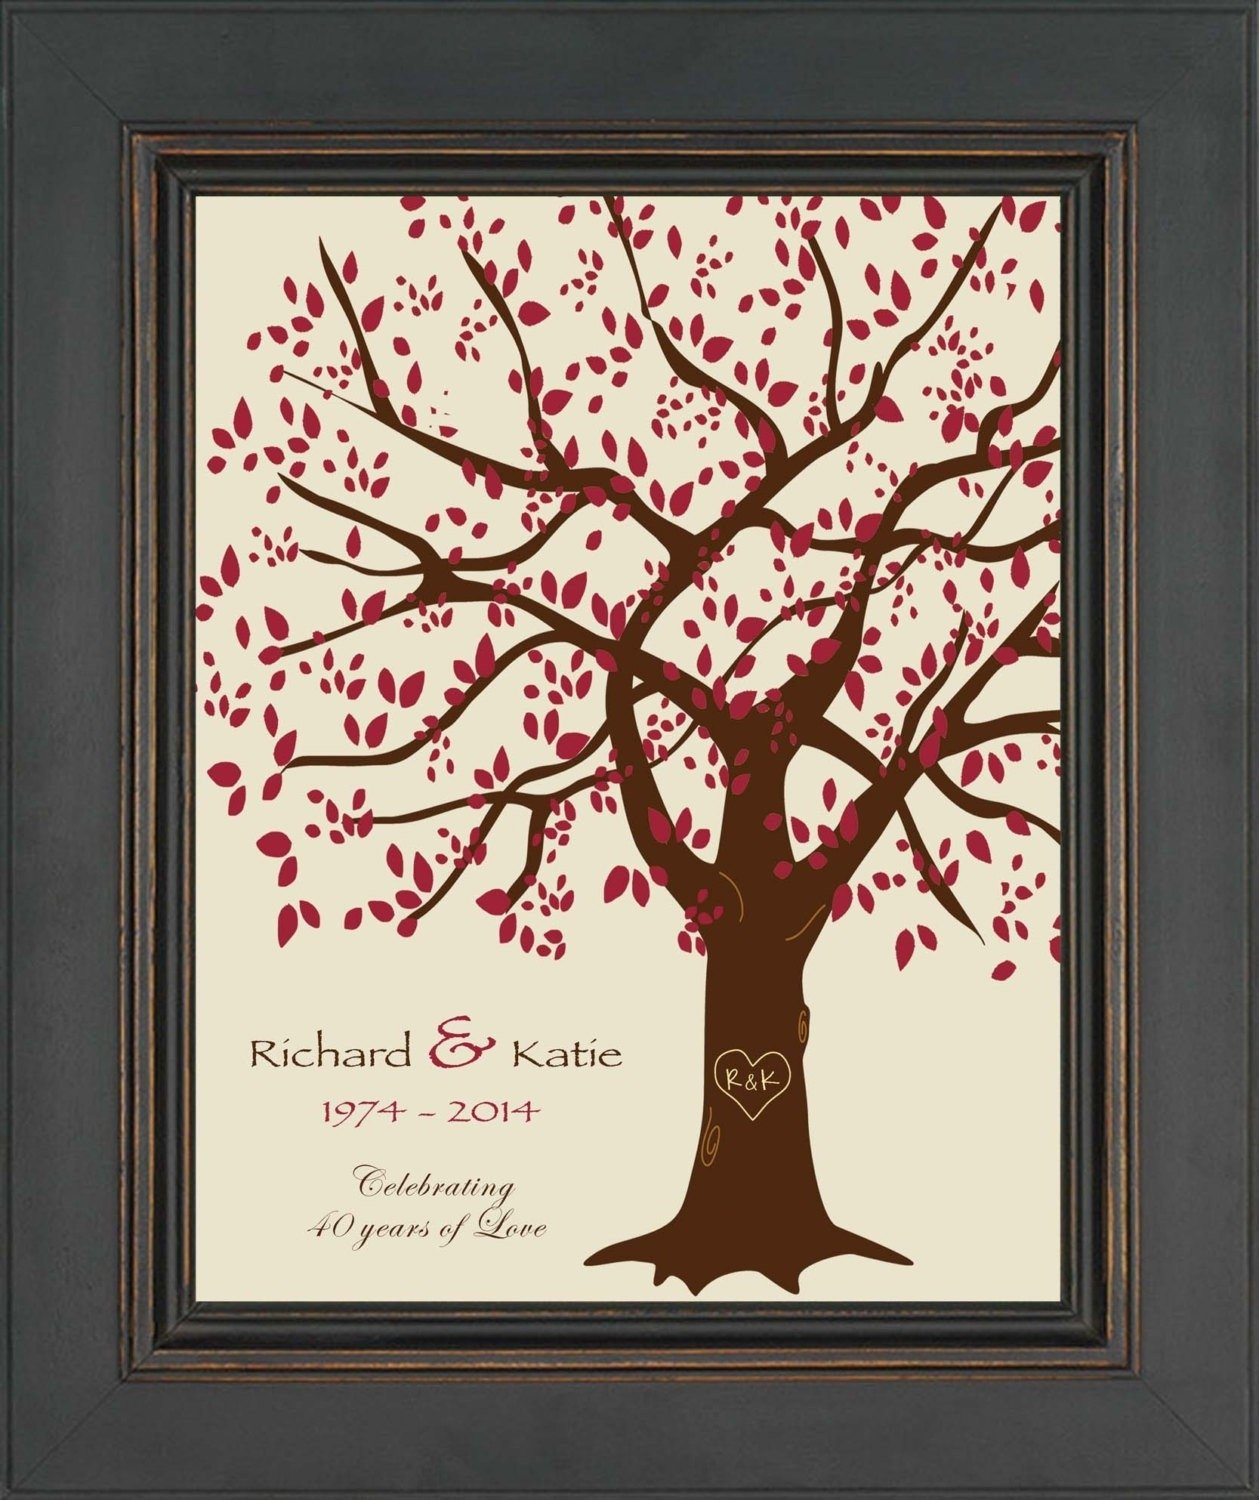 40th wedding anniversary gift ideas for couples unique 40th